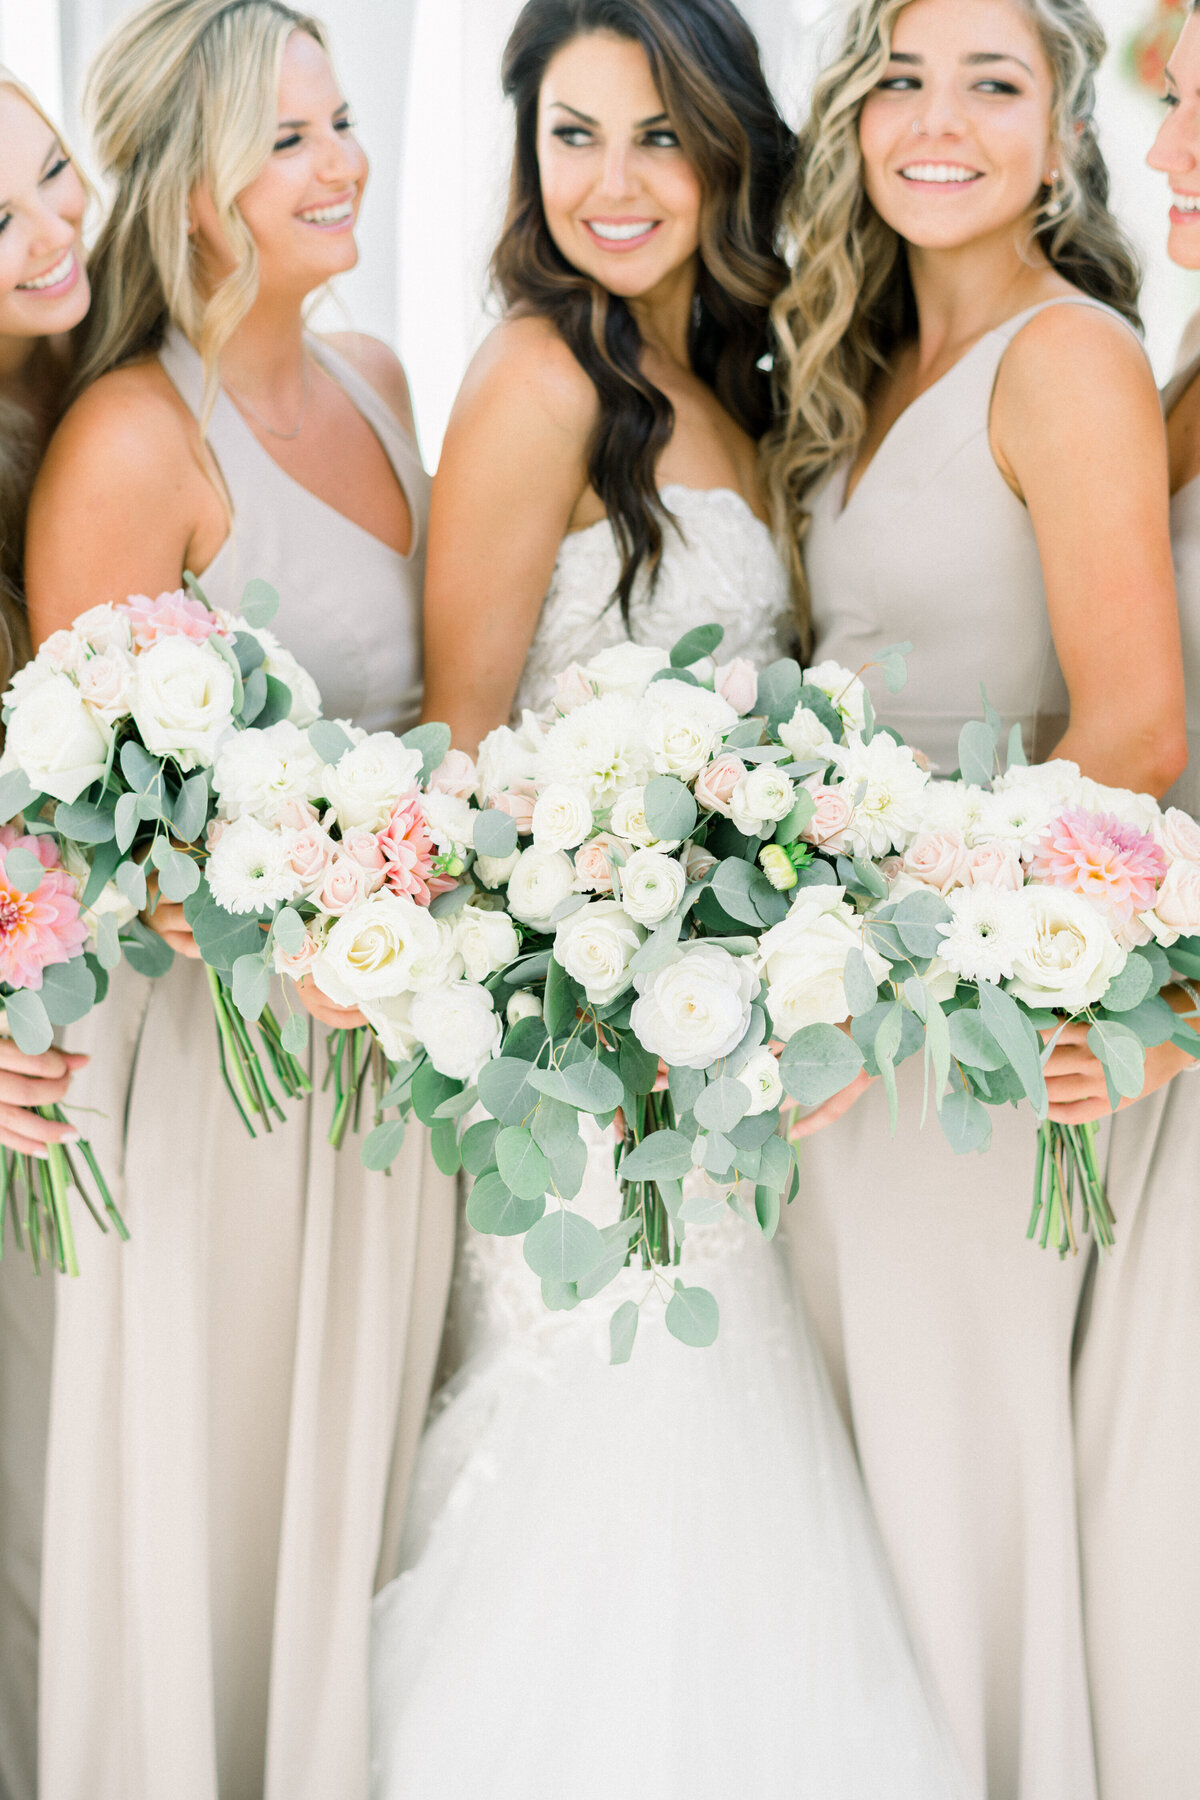 Trish Allison Photography, Minneapolis wedding photographer, MN wedding photographer, luxury wedding photographer, film wedding photographer MN, Lafayette Club Wedding Photos, Lake Minnetonka